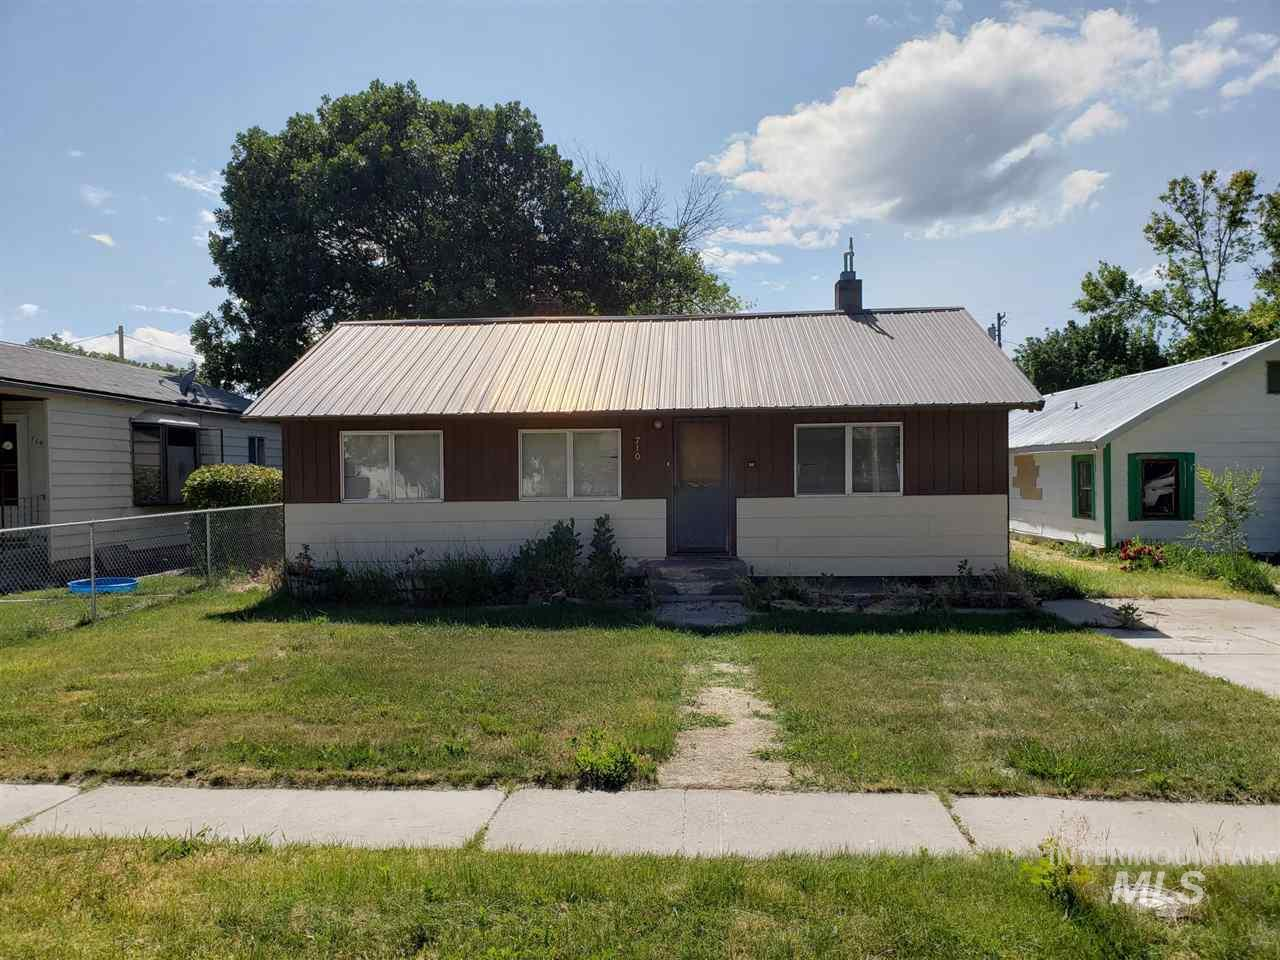 710 Union Ave., Filer, ID 83328